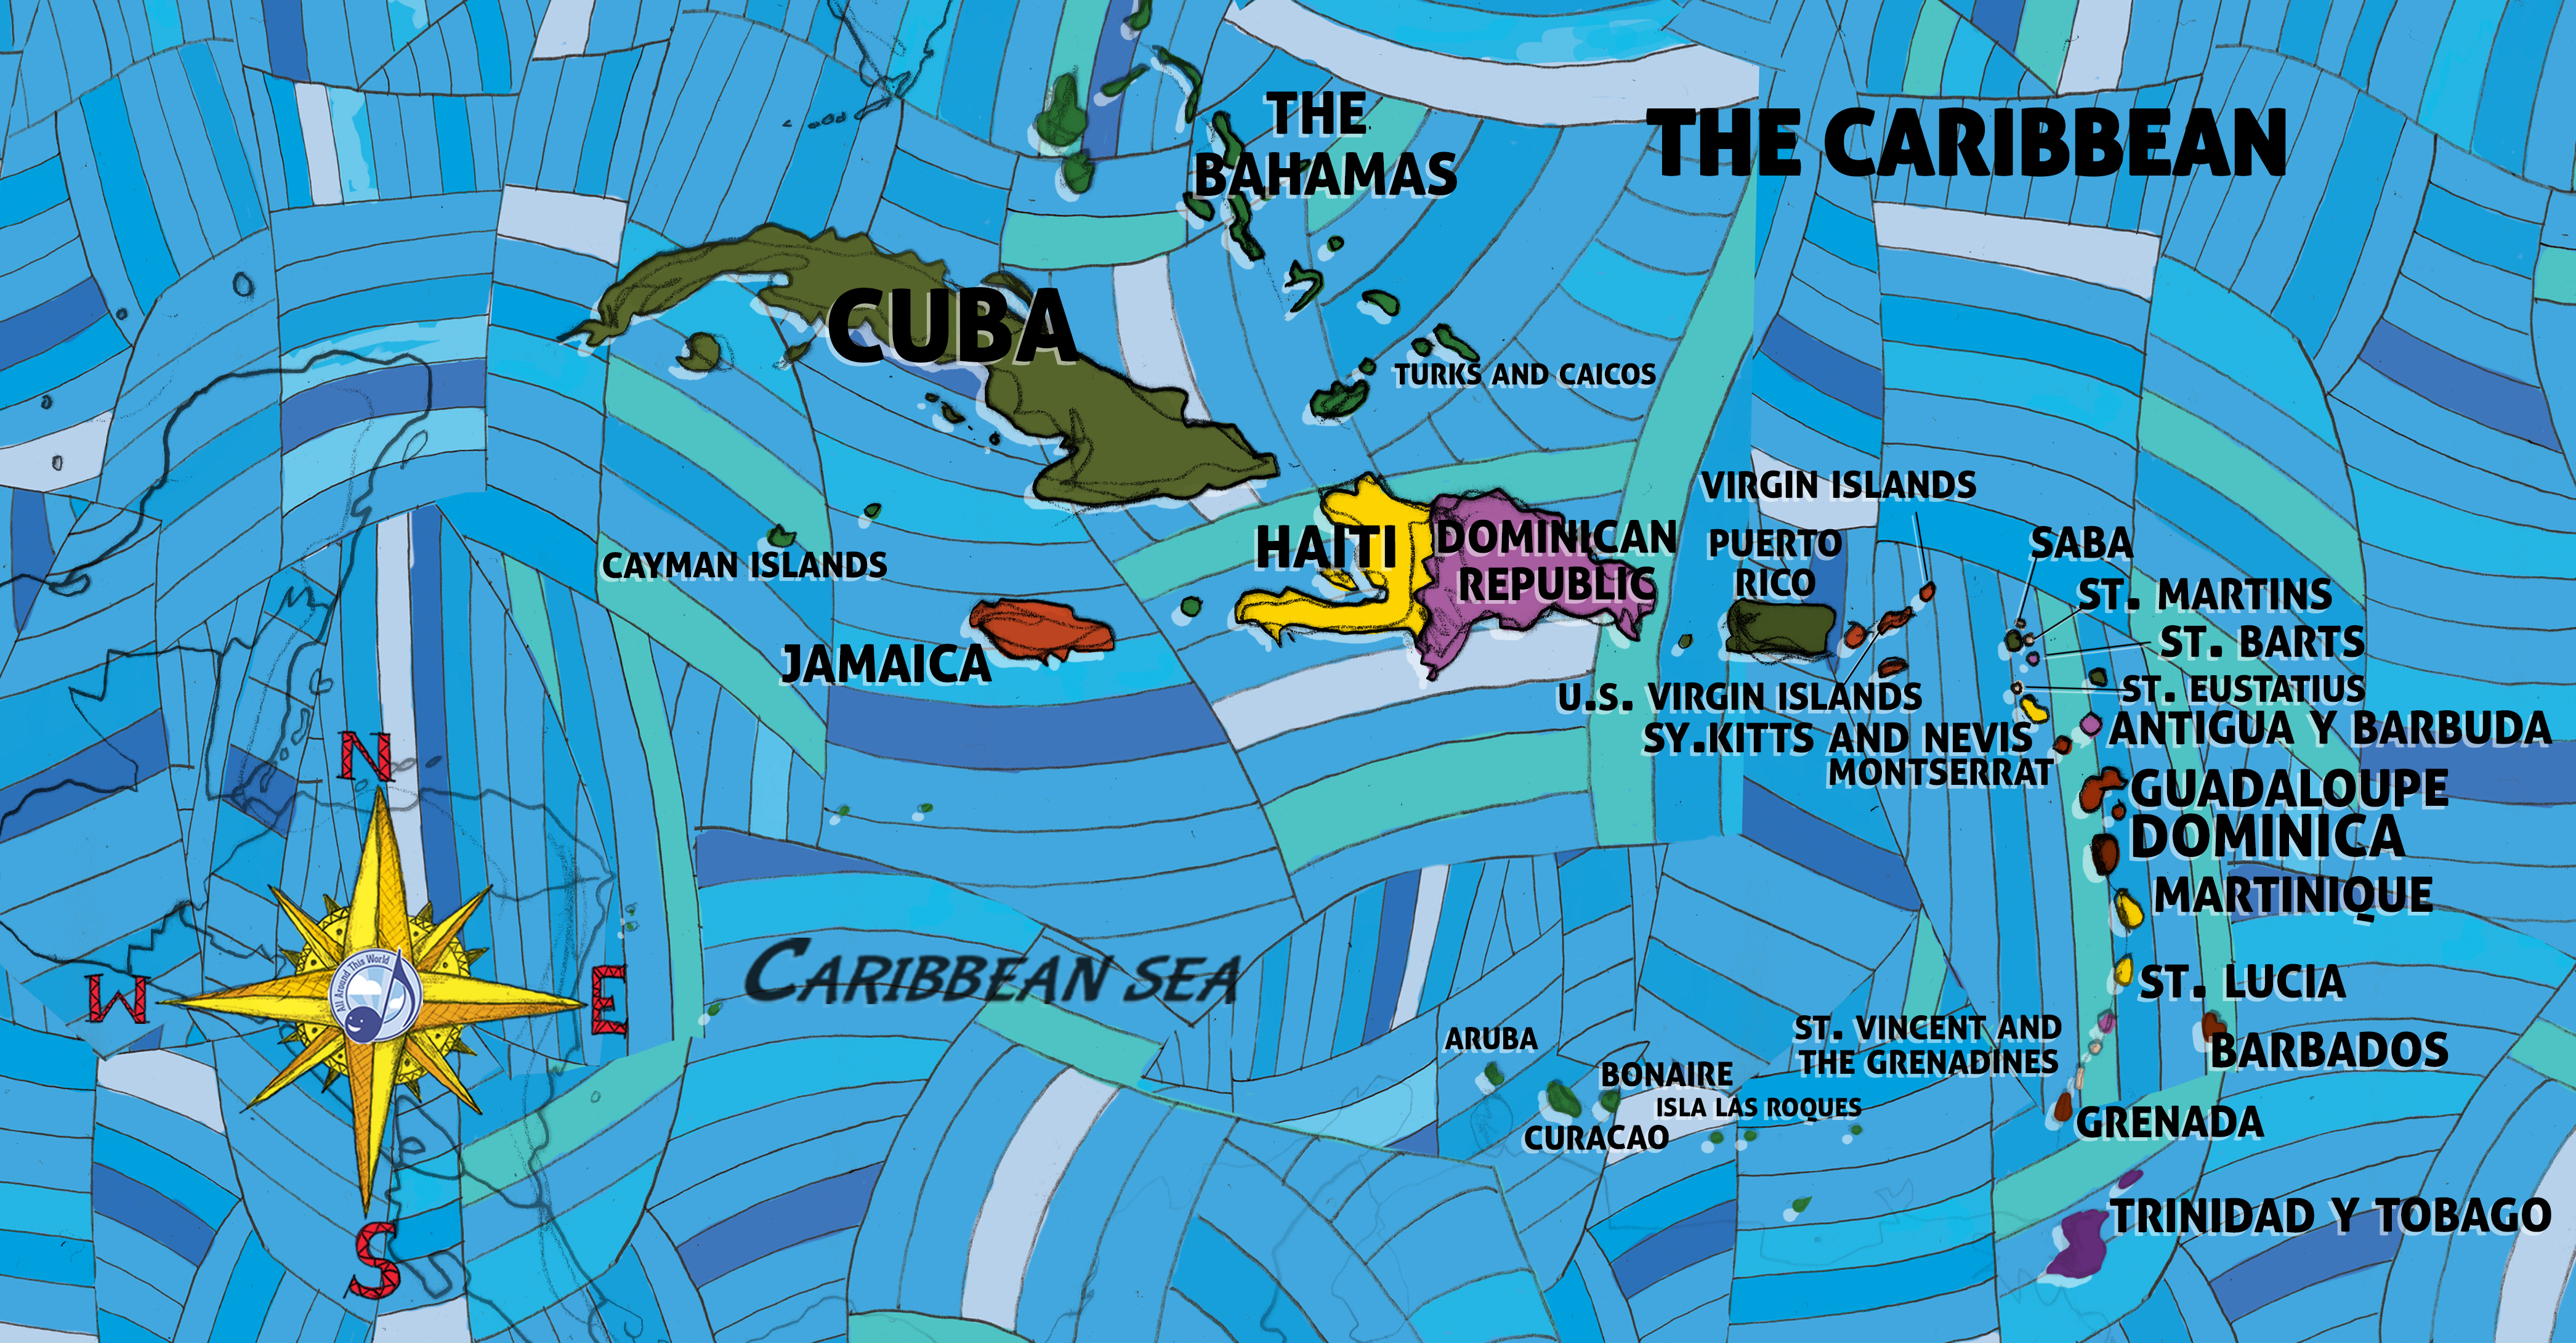 Jay Sand -- All Around This World: The Caribbean